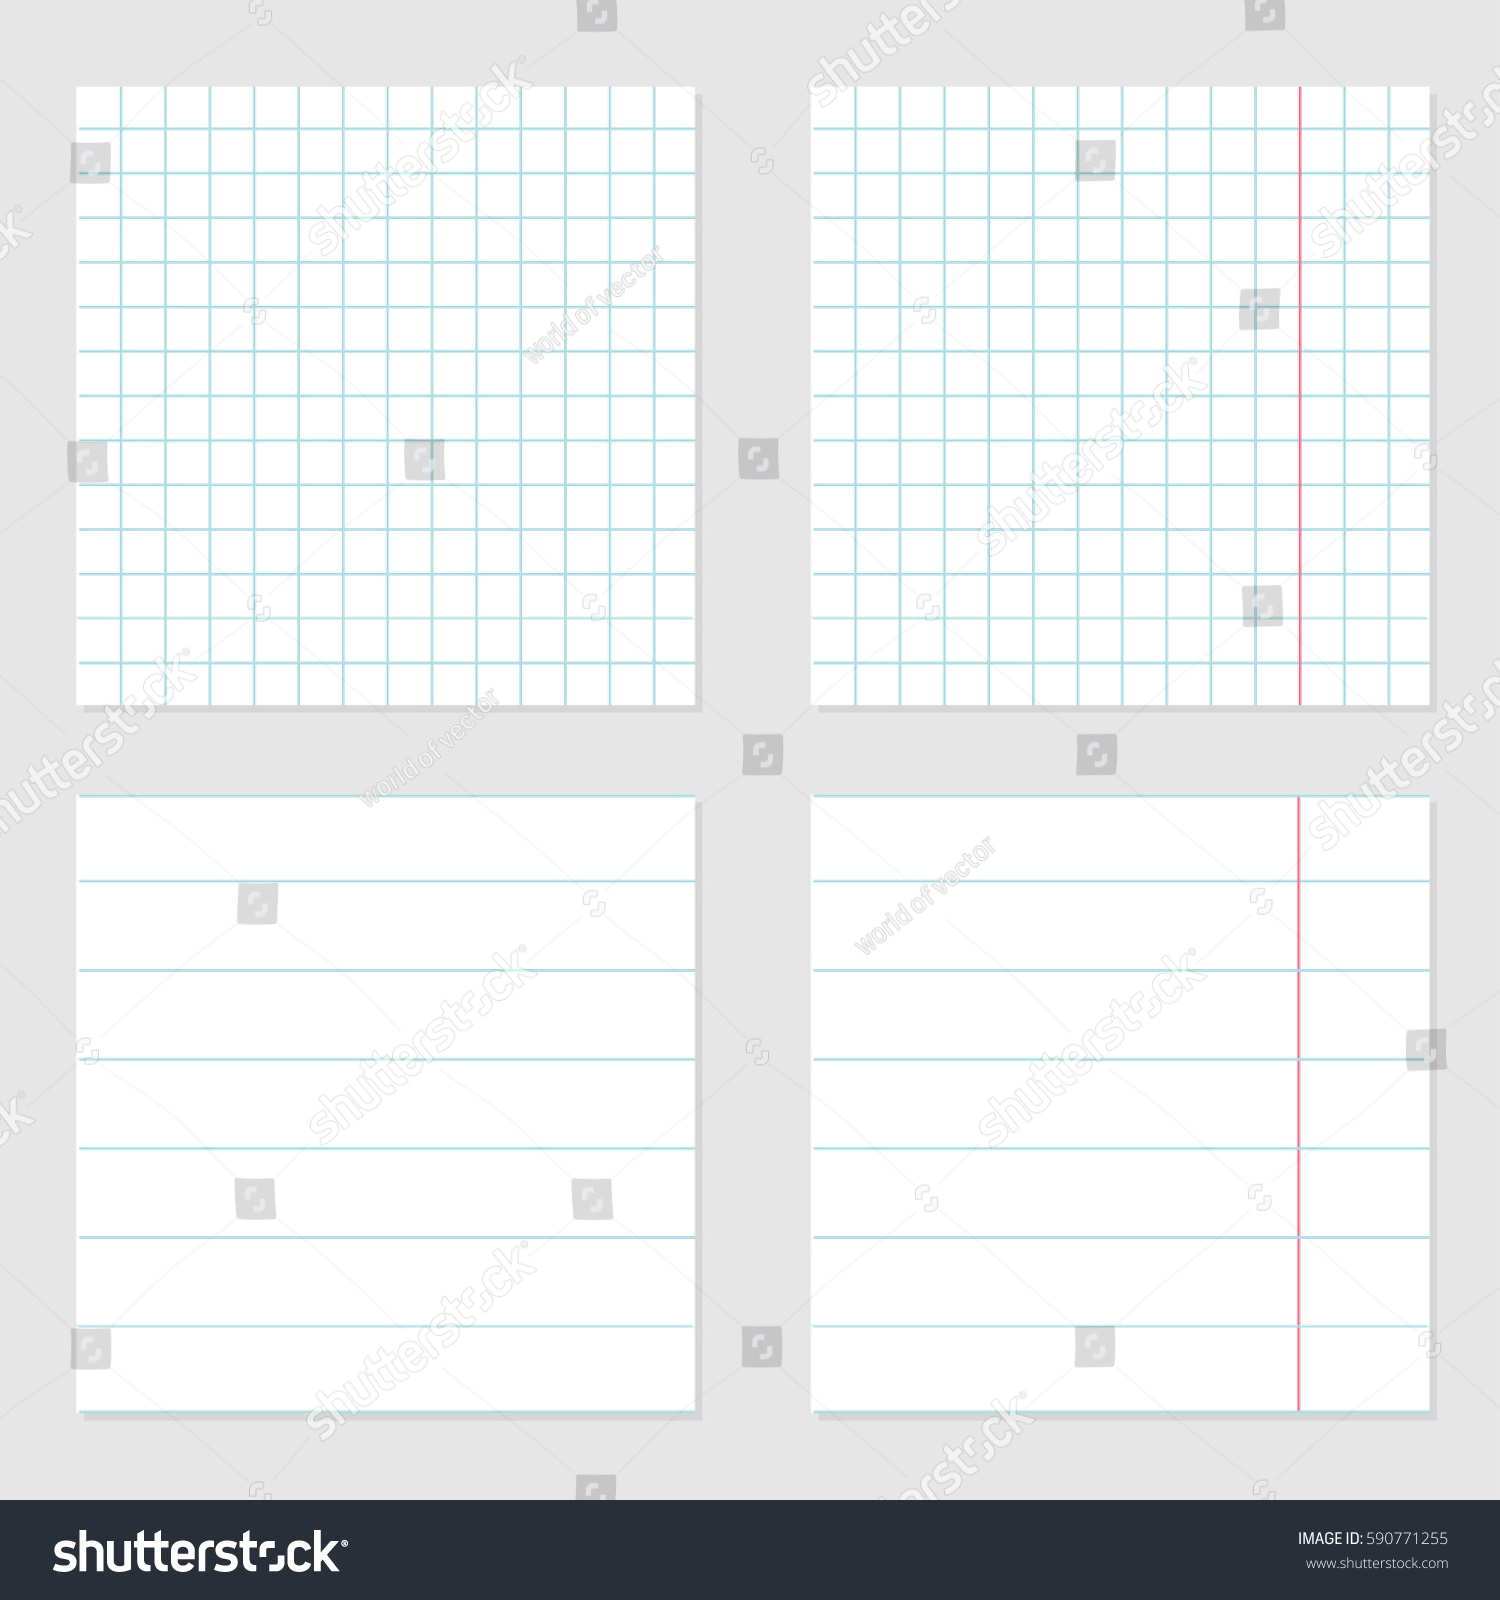 Notebook Paper Texture Cell Lined Template With Red Pink Line Set. Squared  Blank Sheet Of  Lined Notebook Paper Template